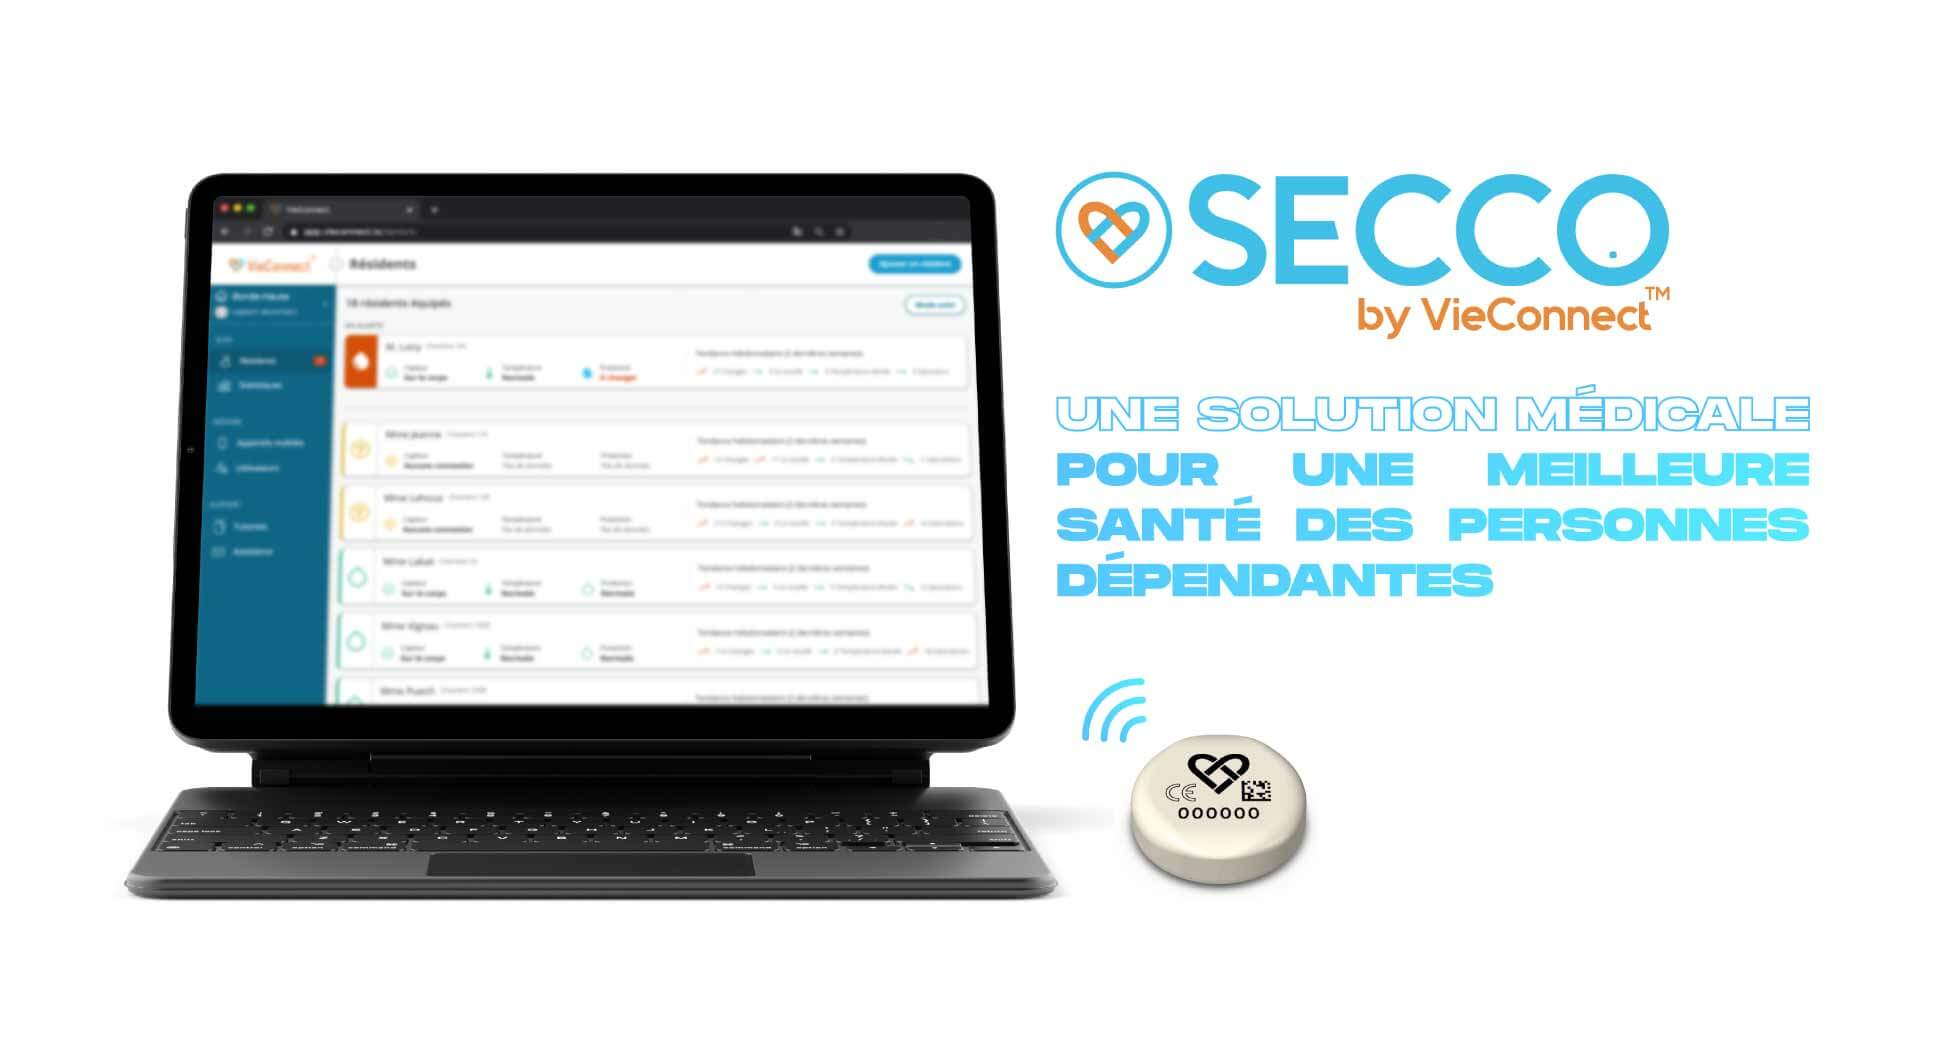 bandeau-SECCObyVieConnect-solution-medicale-dispositif-medical-classe-I